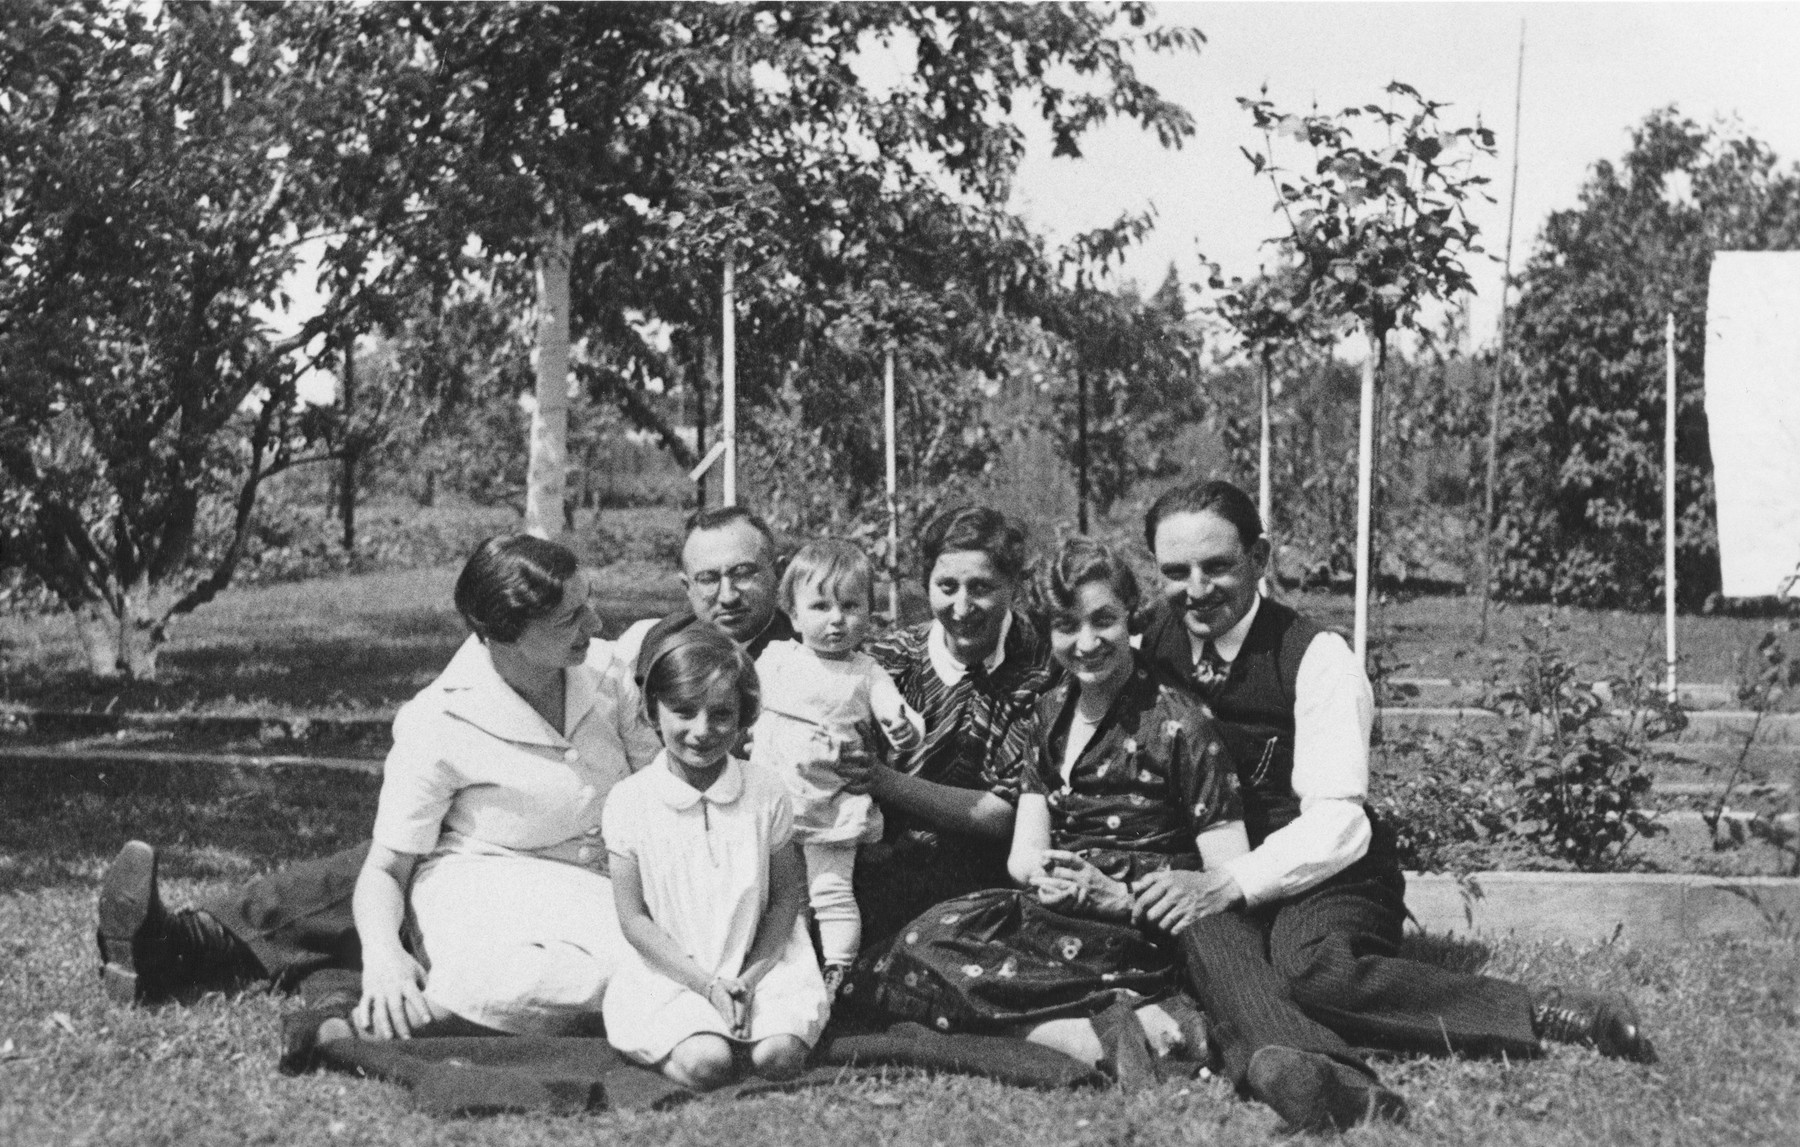 Group portrait of members of a Jewish family in the backyard of their home in Lechenich, Germany.  Pictured clockwise from the front left are: Inge, Sara, Joseph, Gisela, and Klara Berg as well as Erna and Adolph Baum.